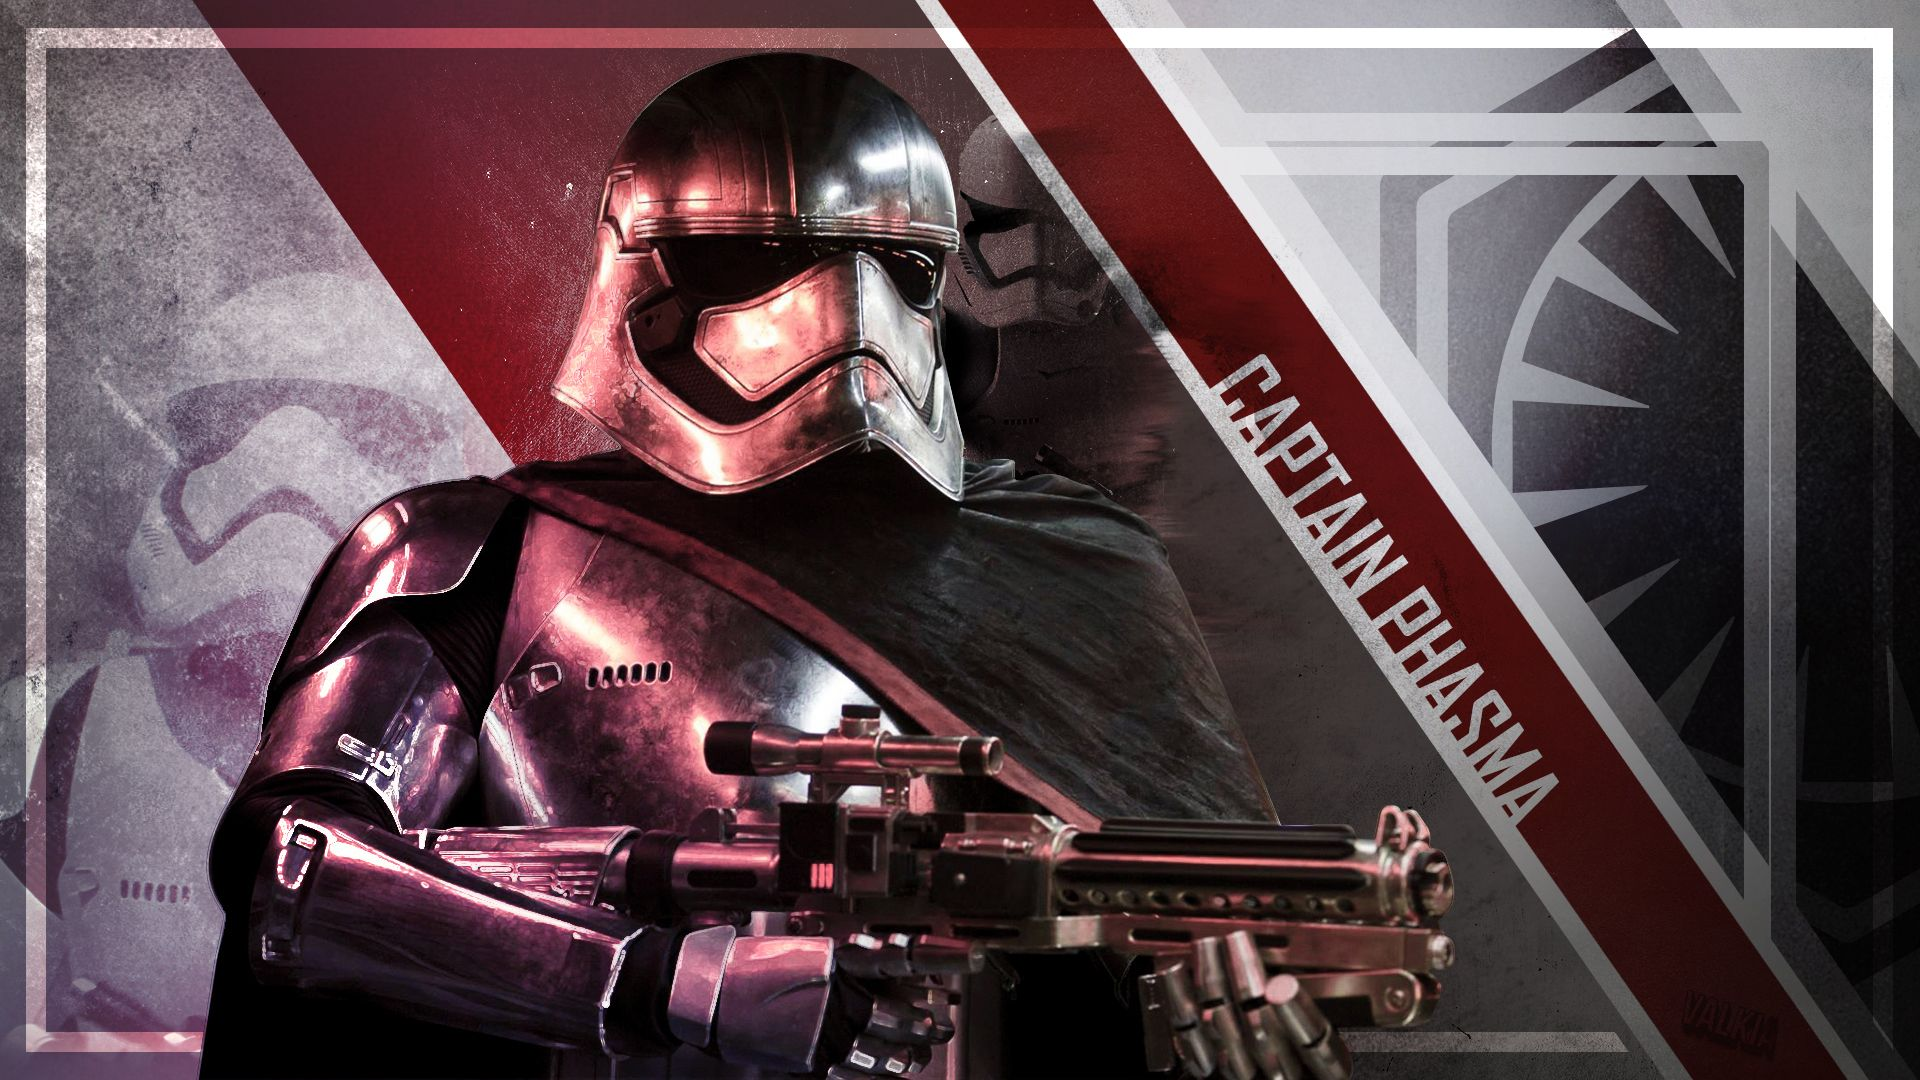 Captain Phasma Wallpaper (1920x1080) by Valkia - Imgur